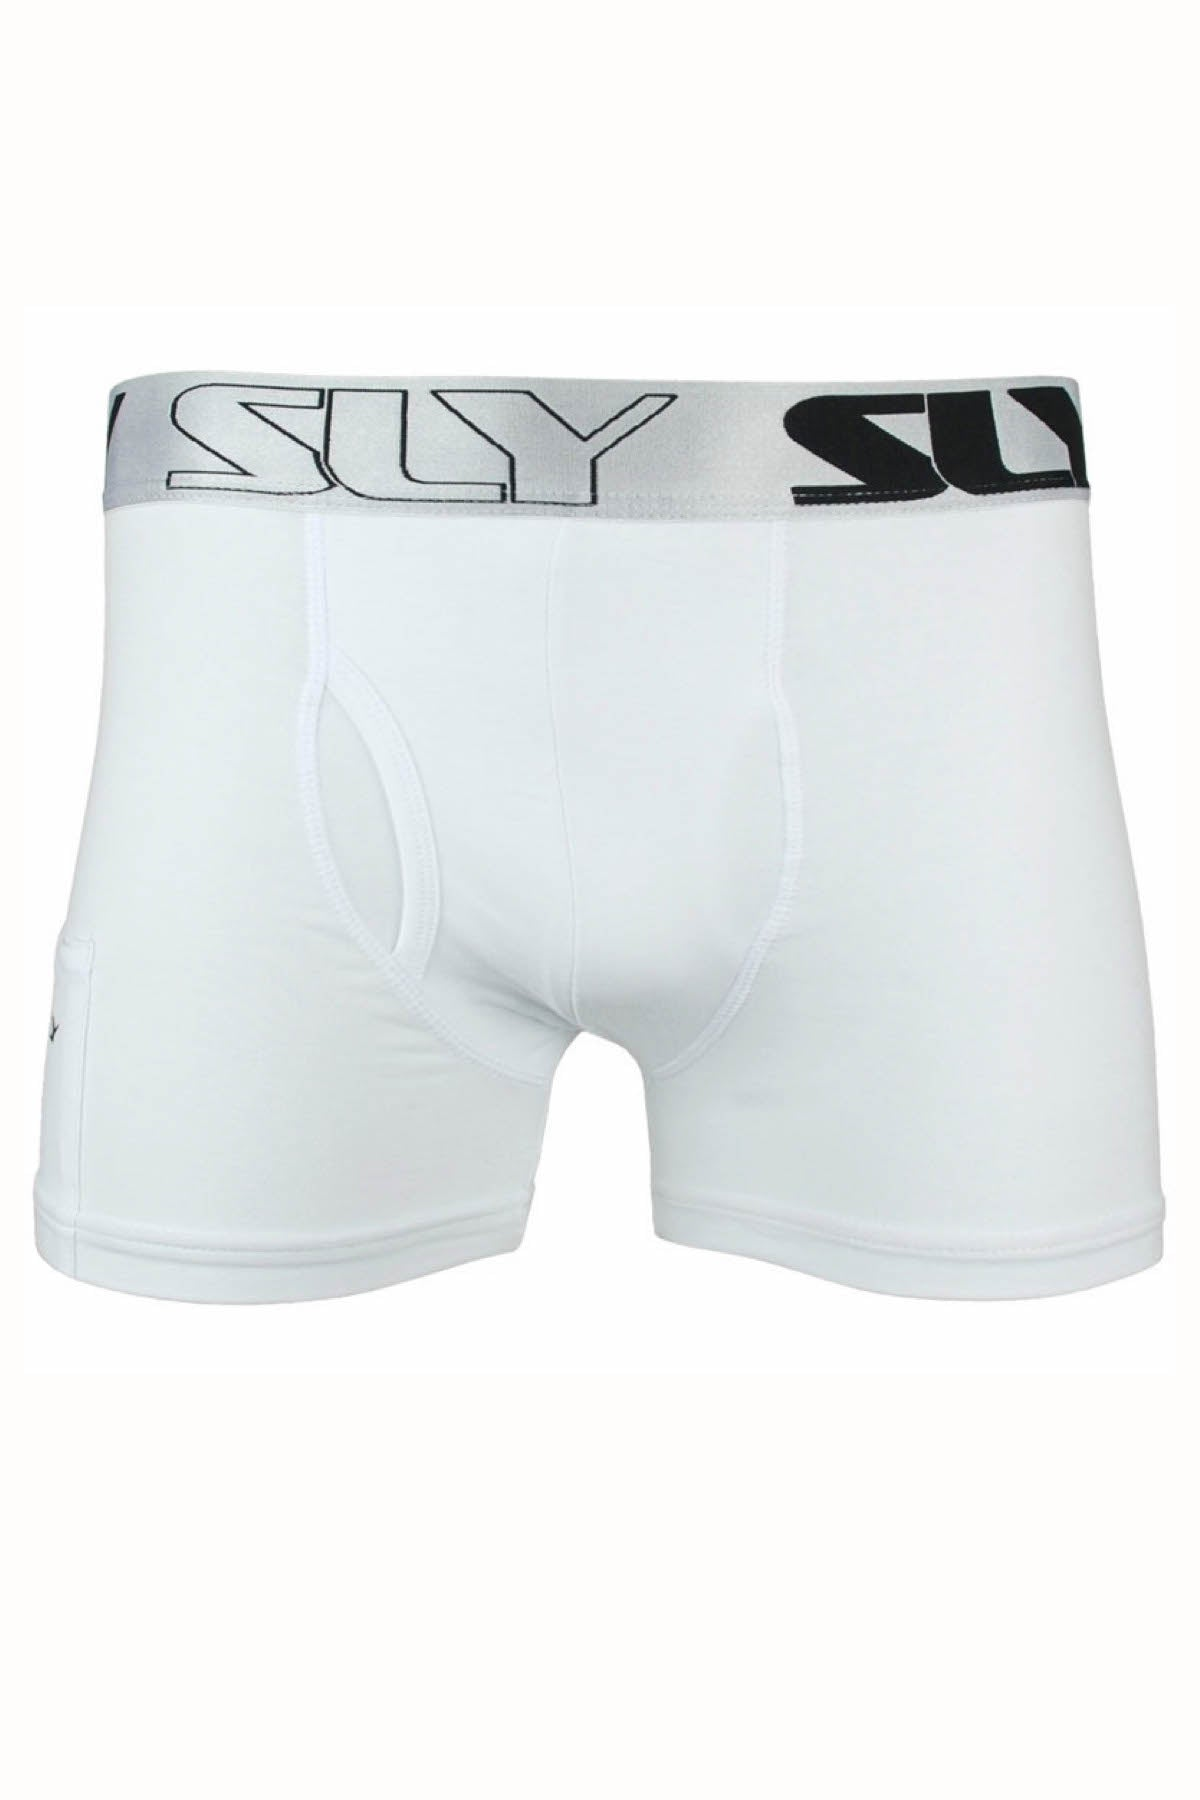 Sly White Solid Boxer Brief